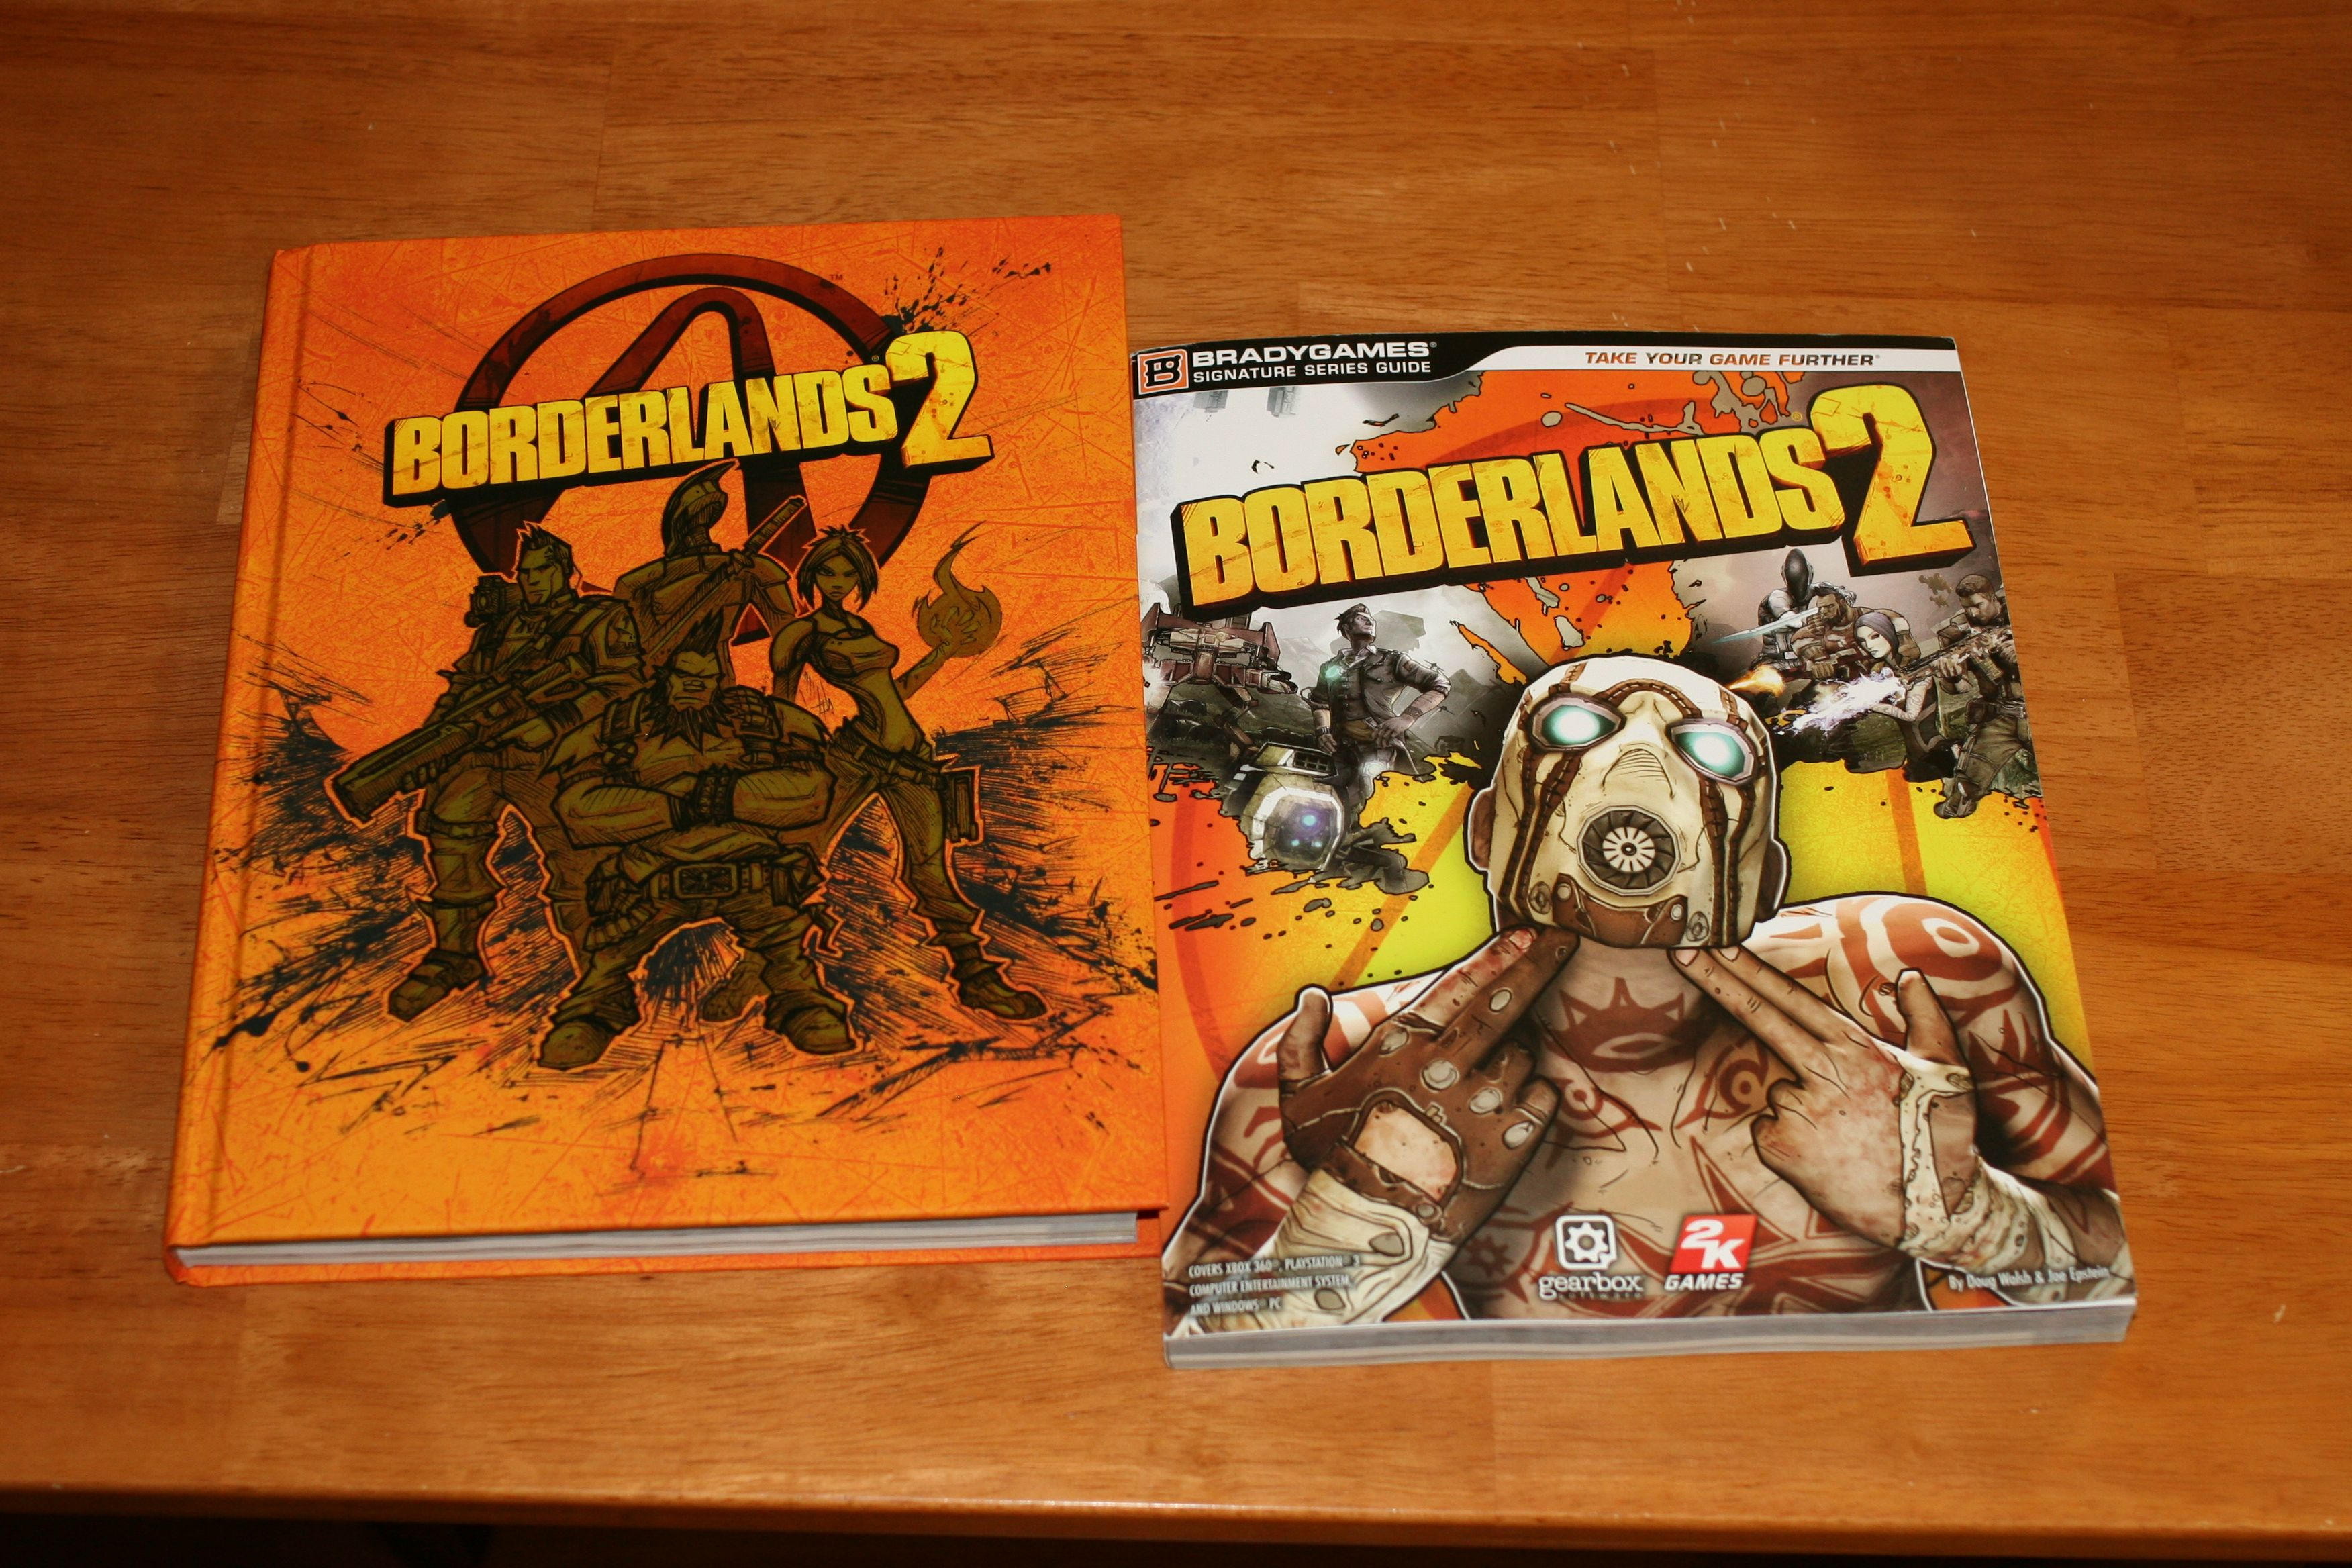 Borderlands 2 Collector's Edition Strategy Guide: Why Should I Buy?